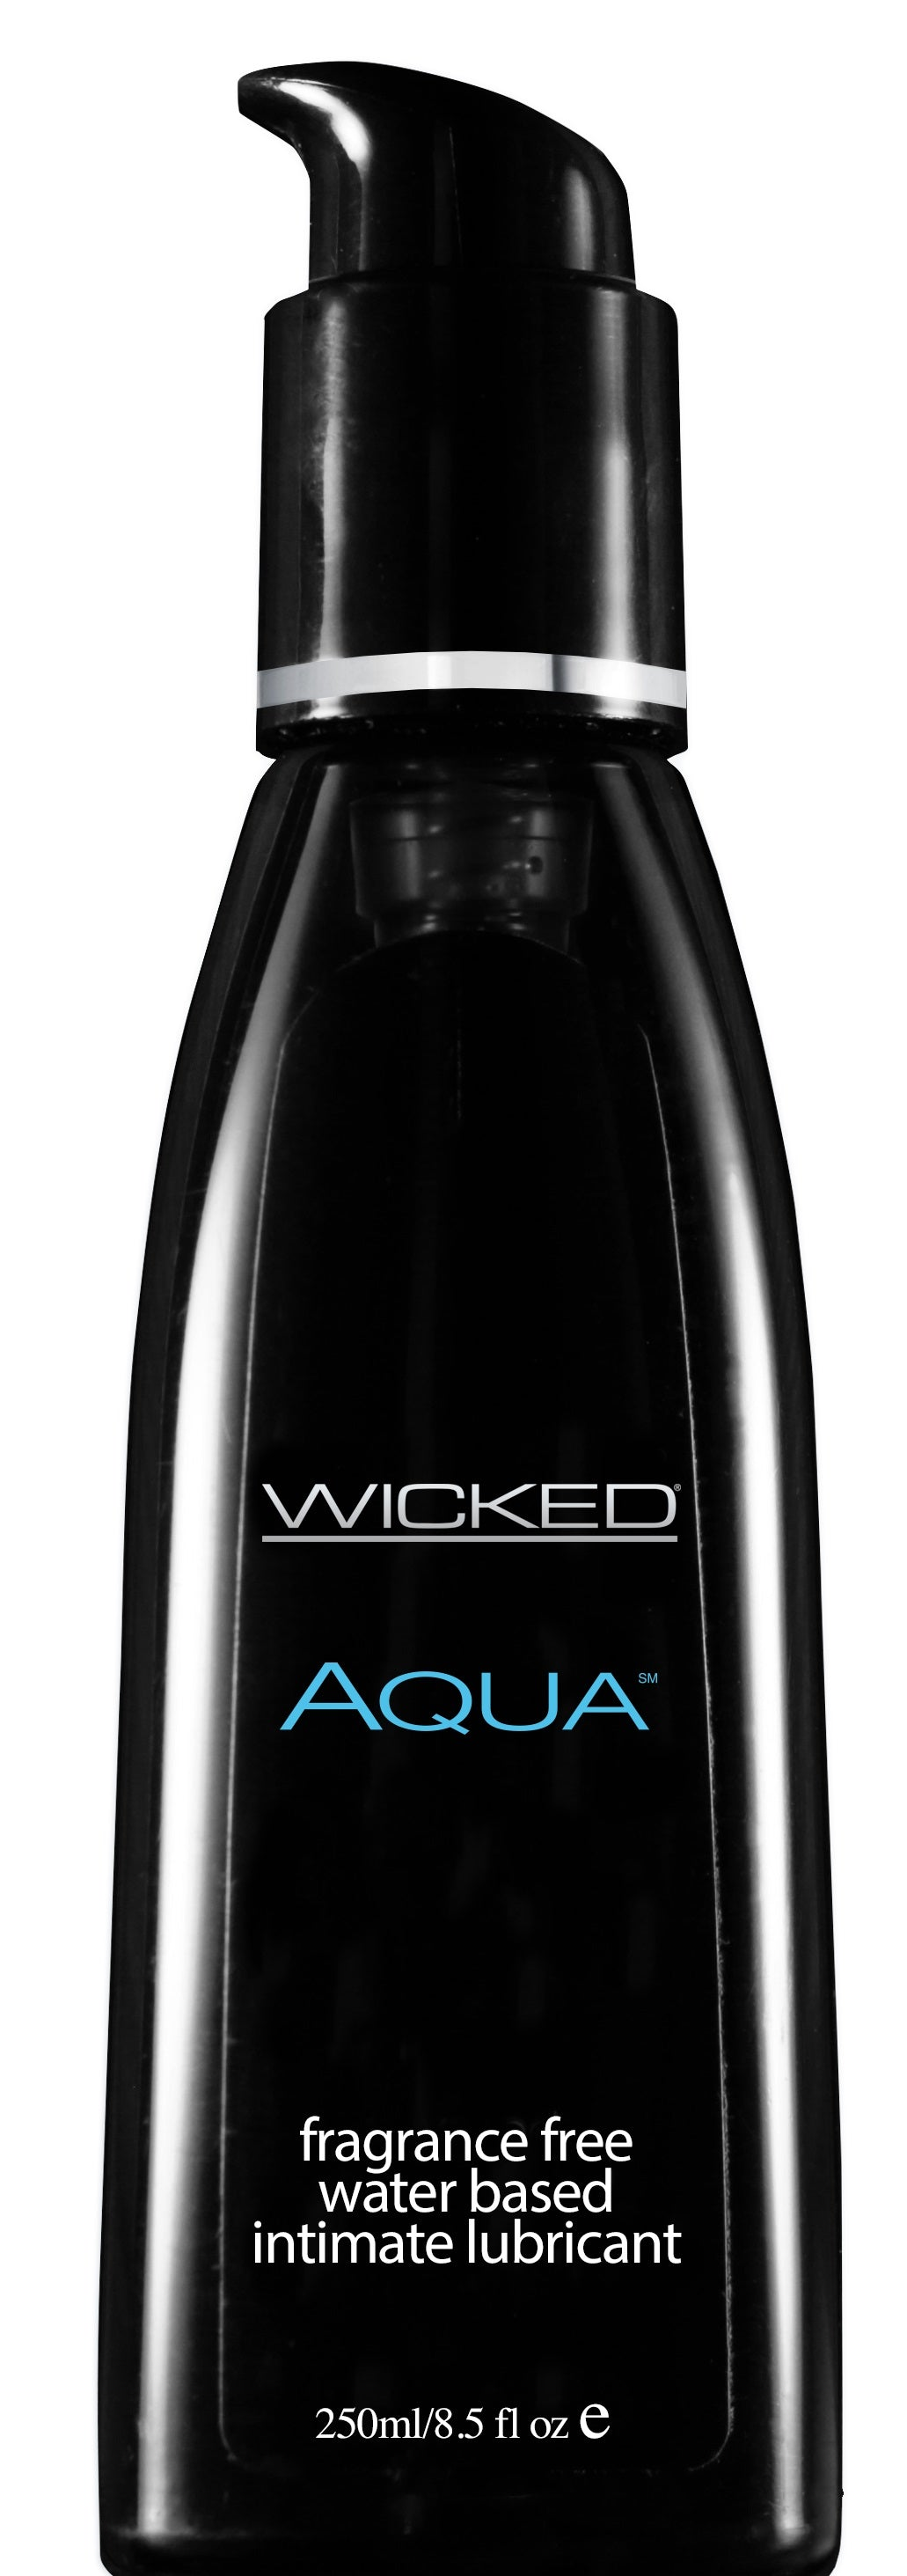 Wicked Aqua Fragrance Free Water-Based Lubricant - 8.5 Fl. Oz. / 250 ml - My sheree and More